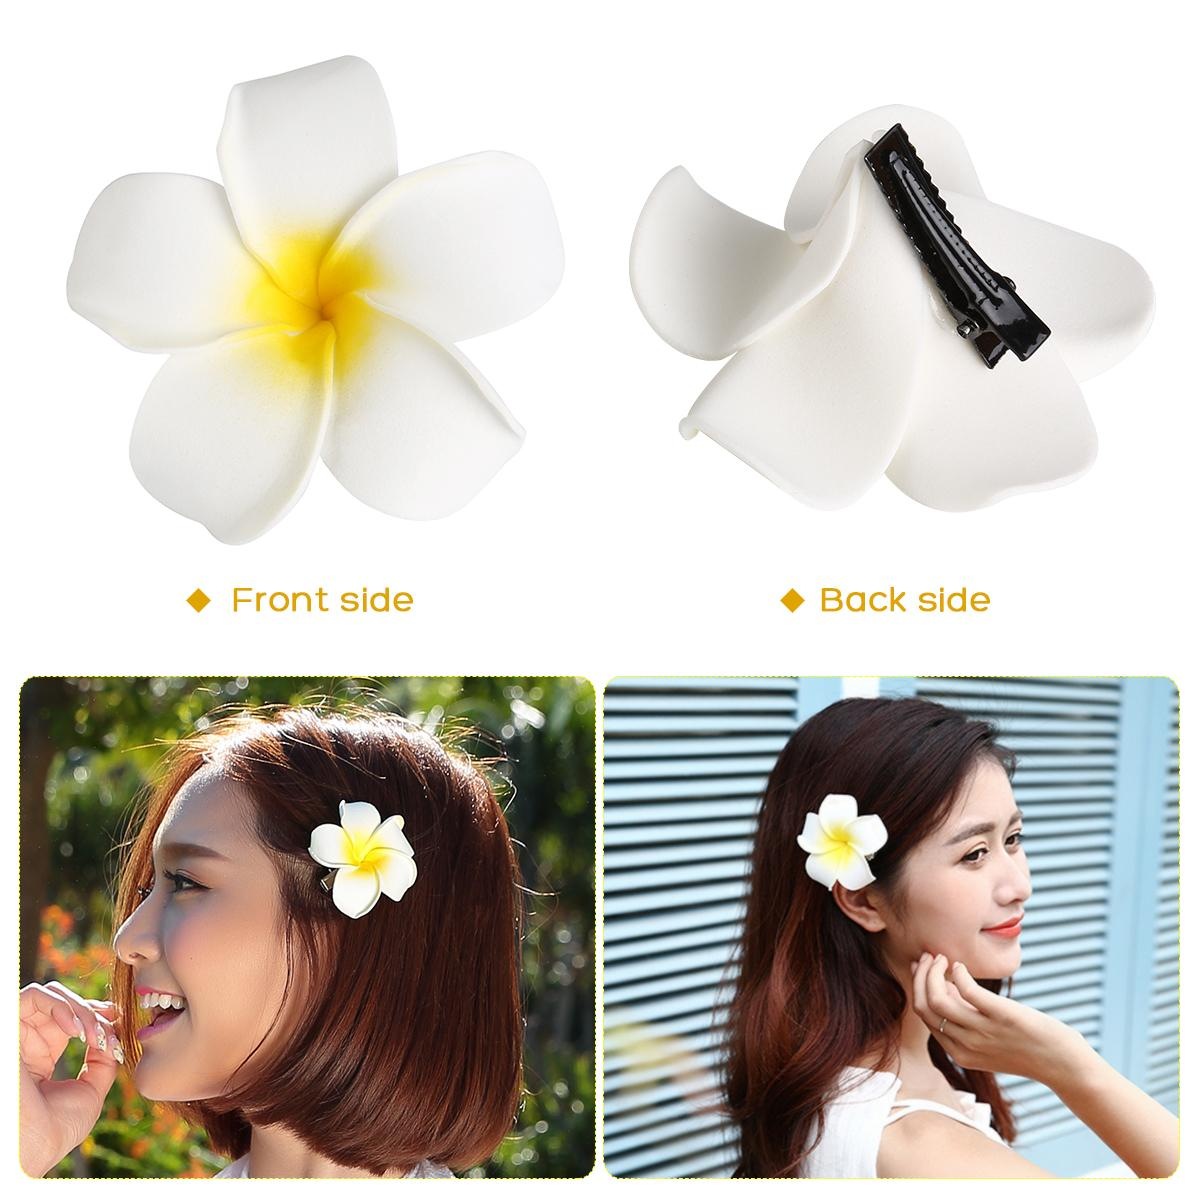 7cm Hawaii Flower Hair Clip Hairpin Simulation Egg Flower Headdress for Beach Luau Party (White with Yellow) 40pcs/set